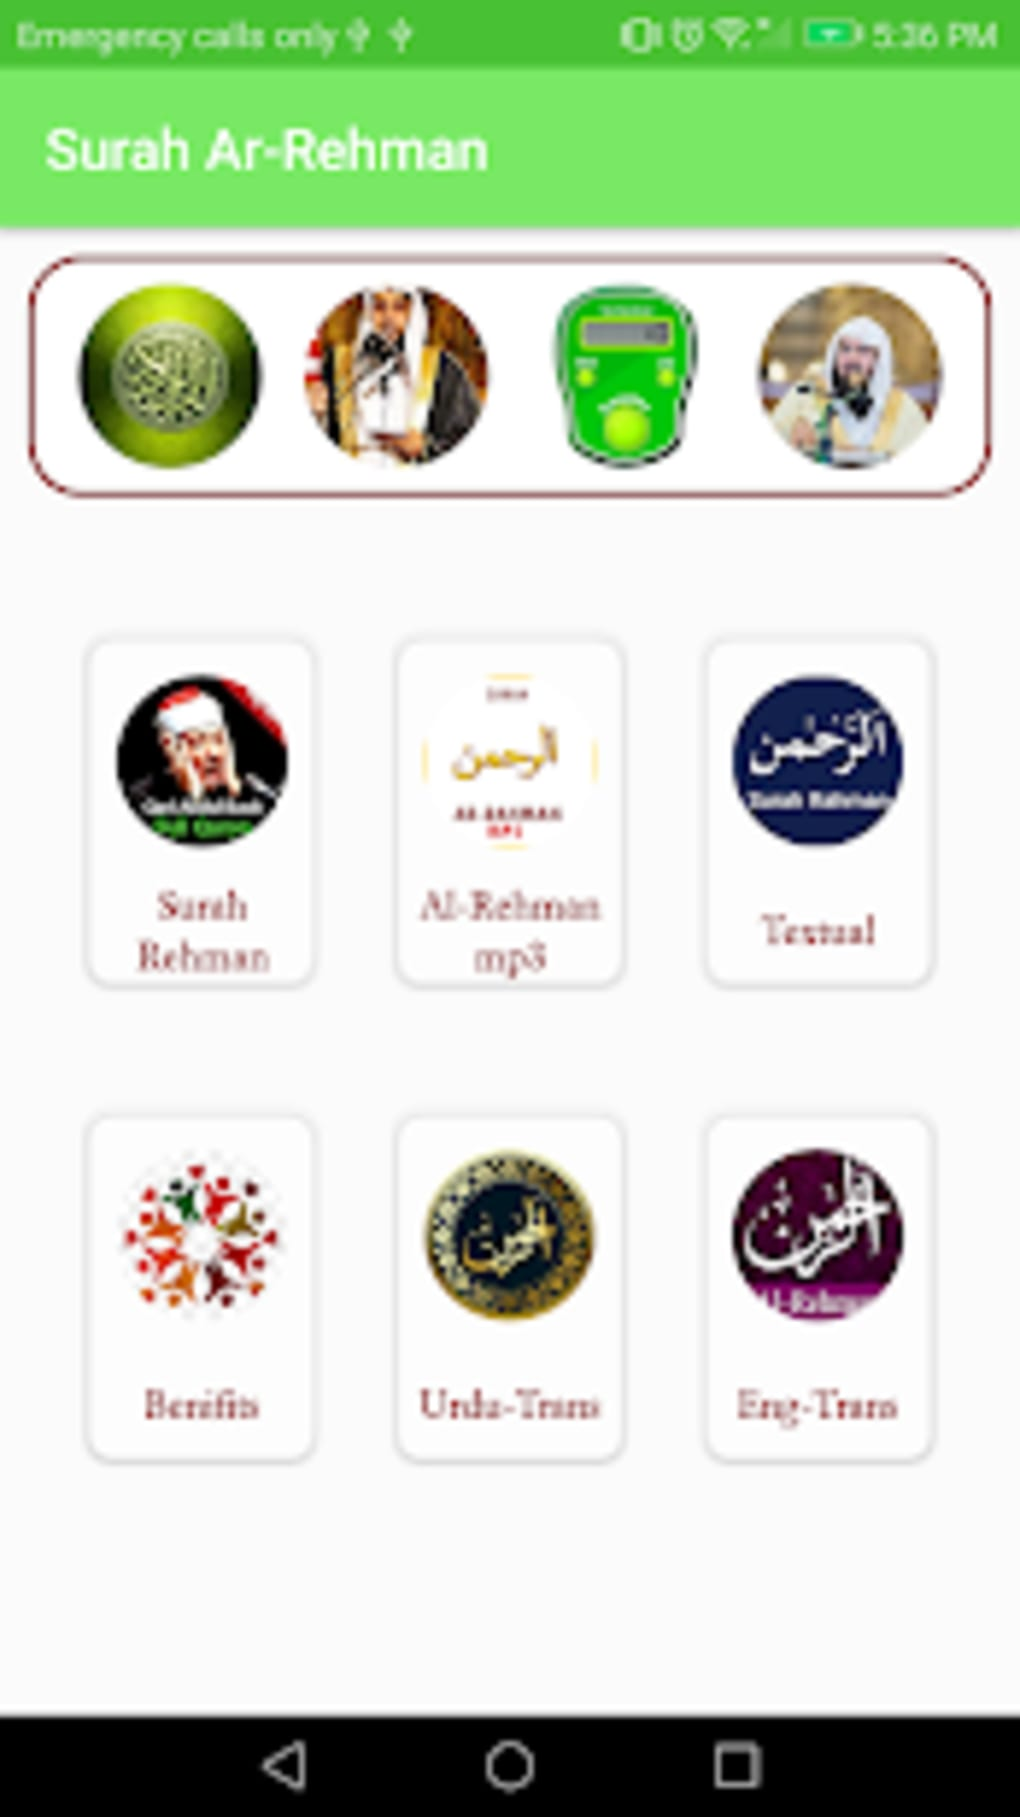 Qari Abdul Basit Surah Rehman for Android - Download